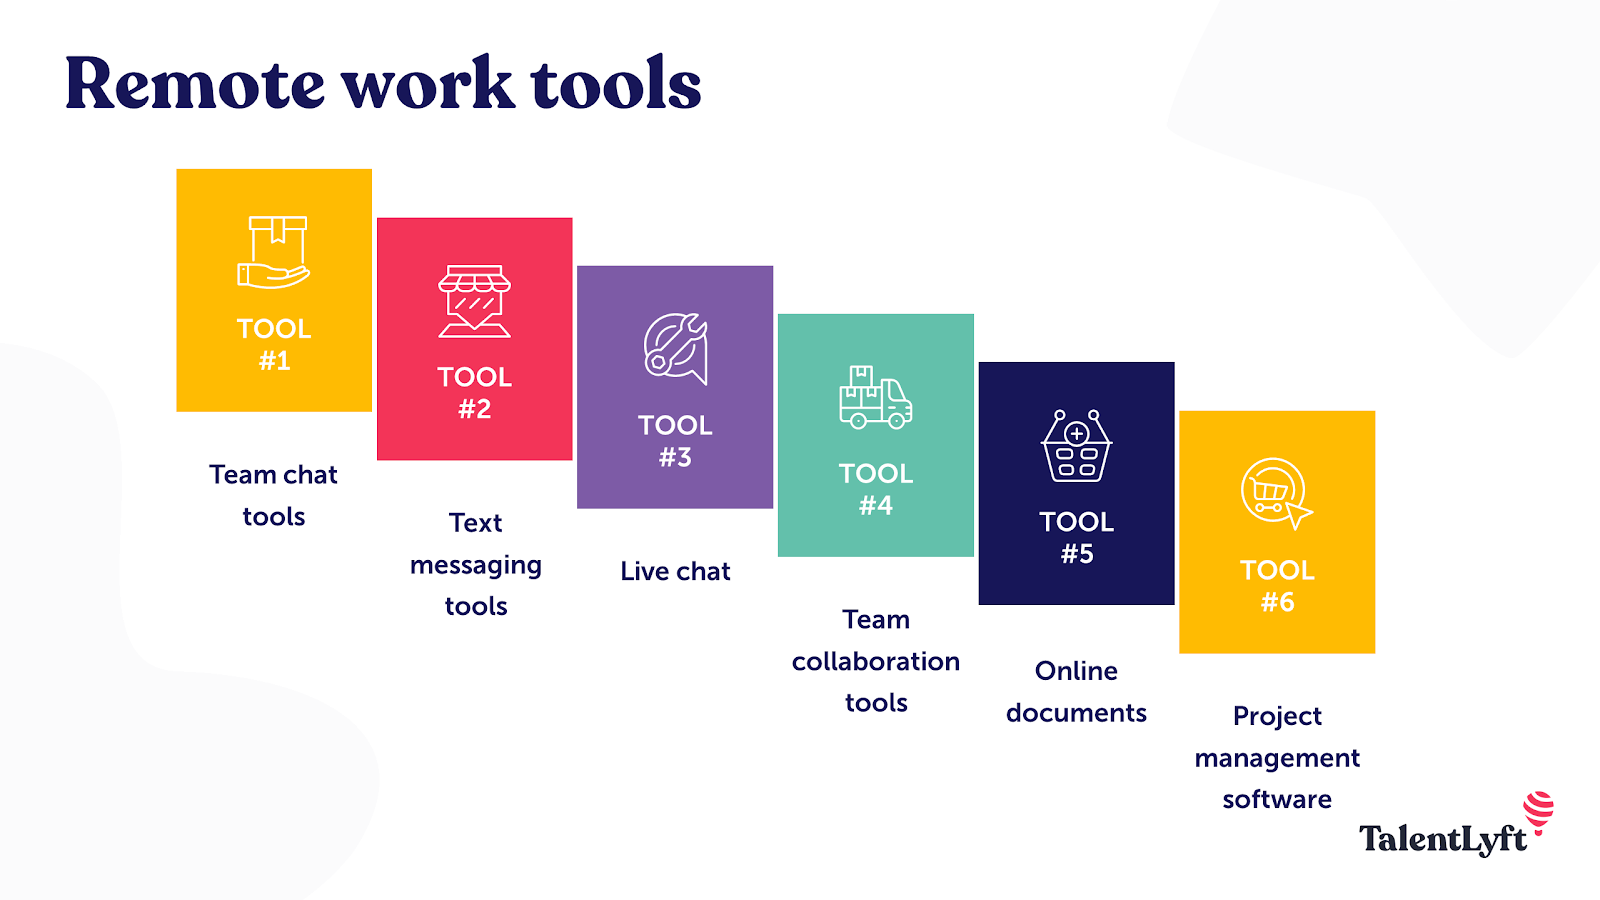 Top remote work tools